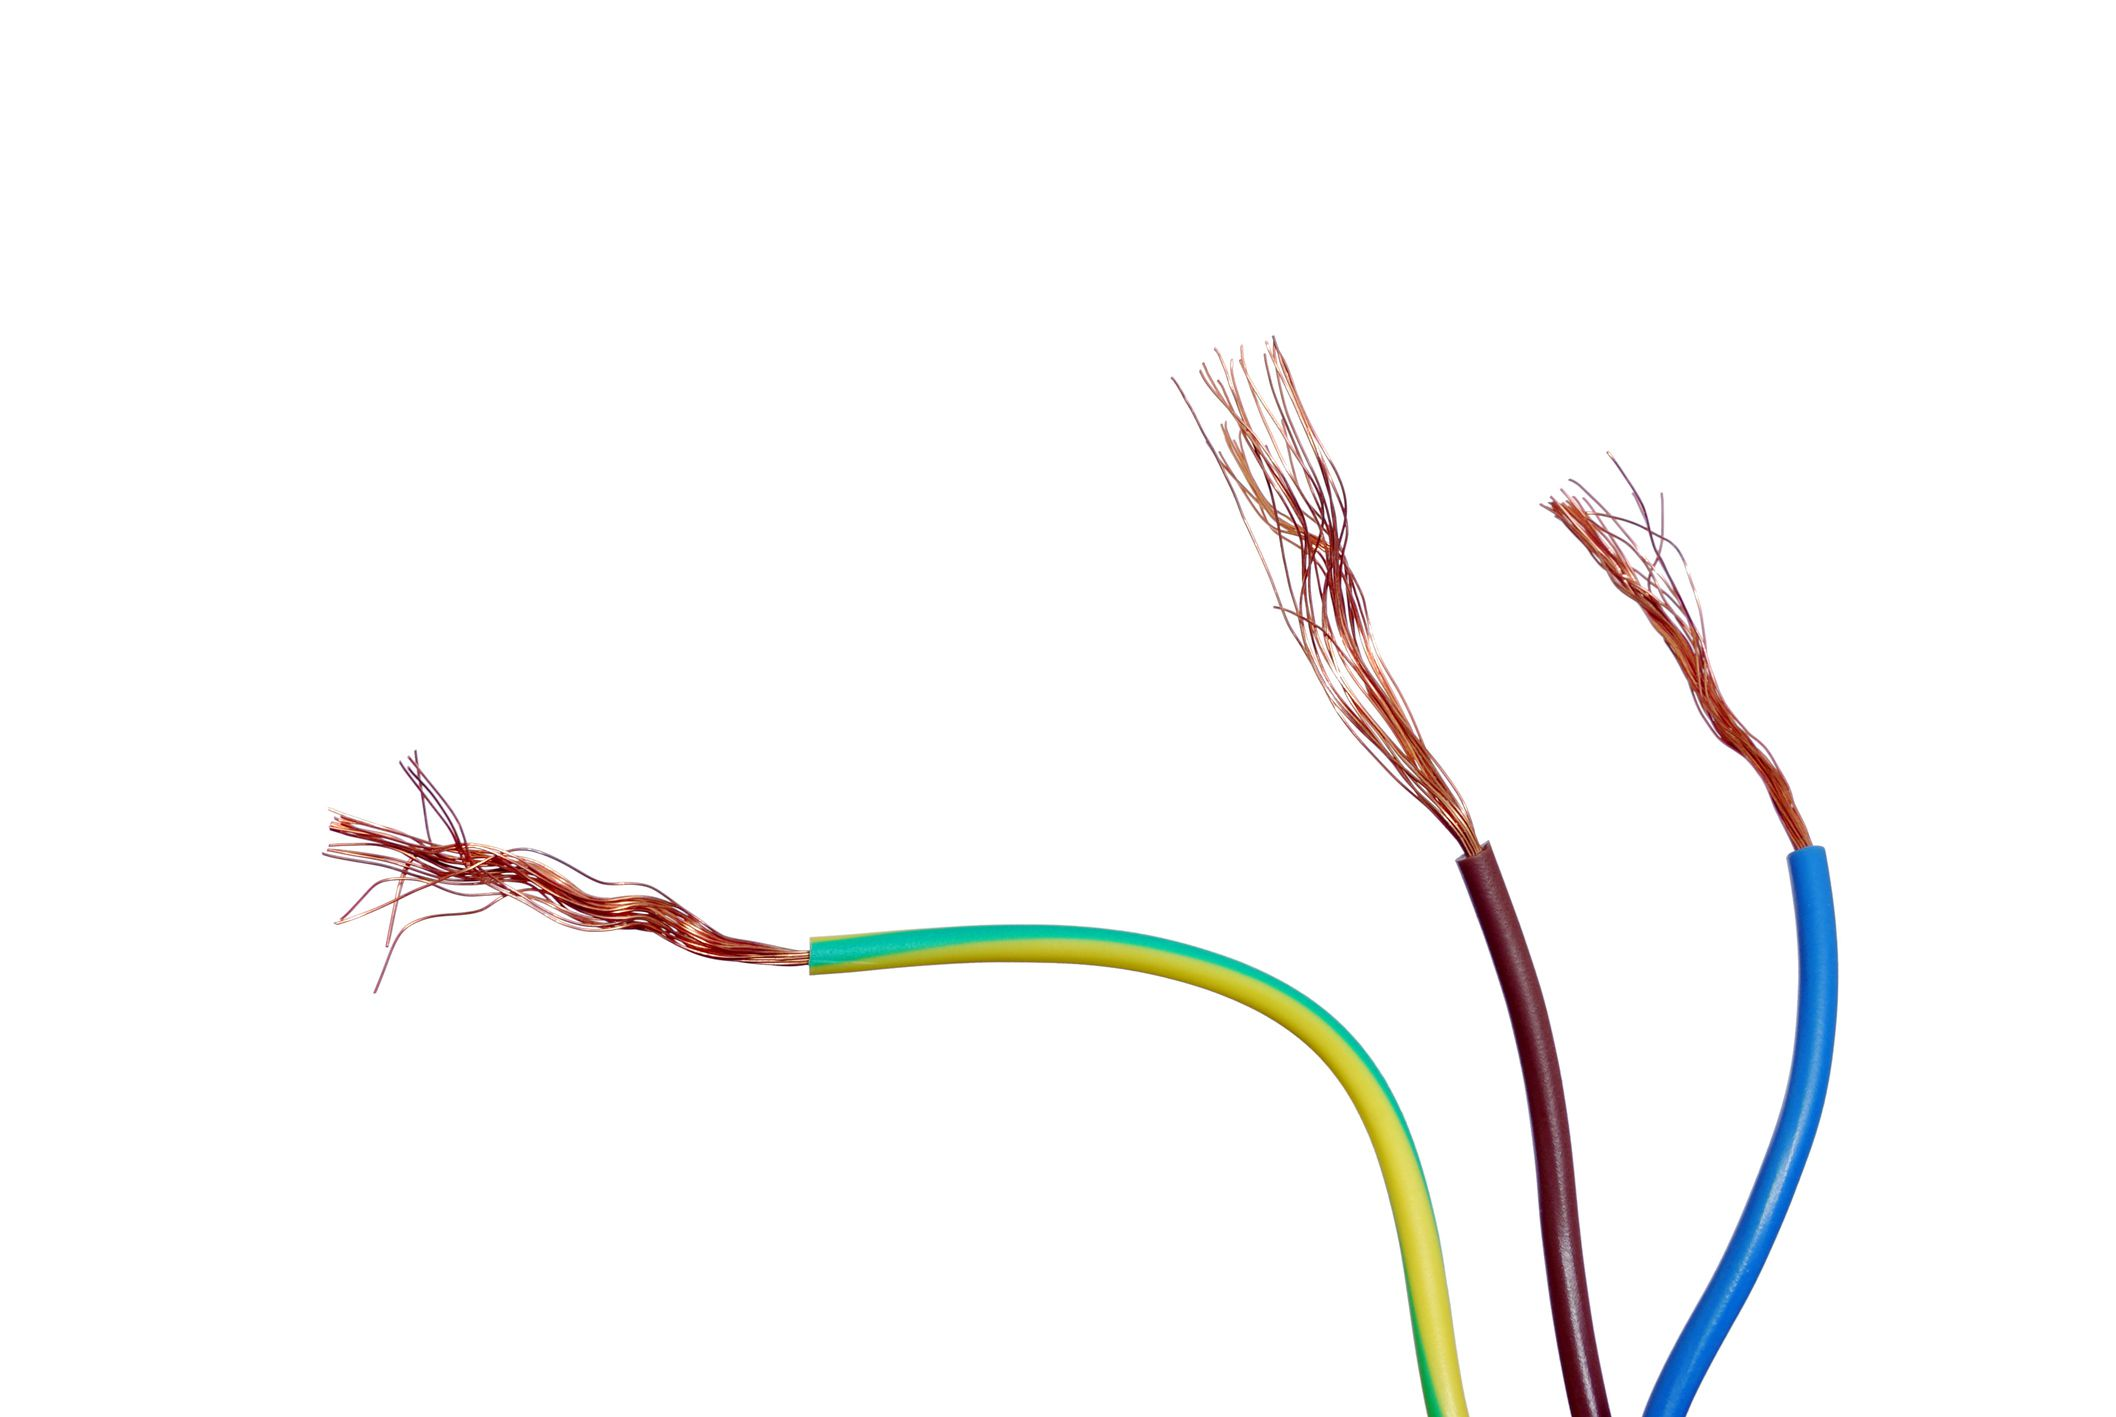 touch audio wiring quickly testing speaker wires and speaker connections  quickly testing speaker wires and